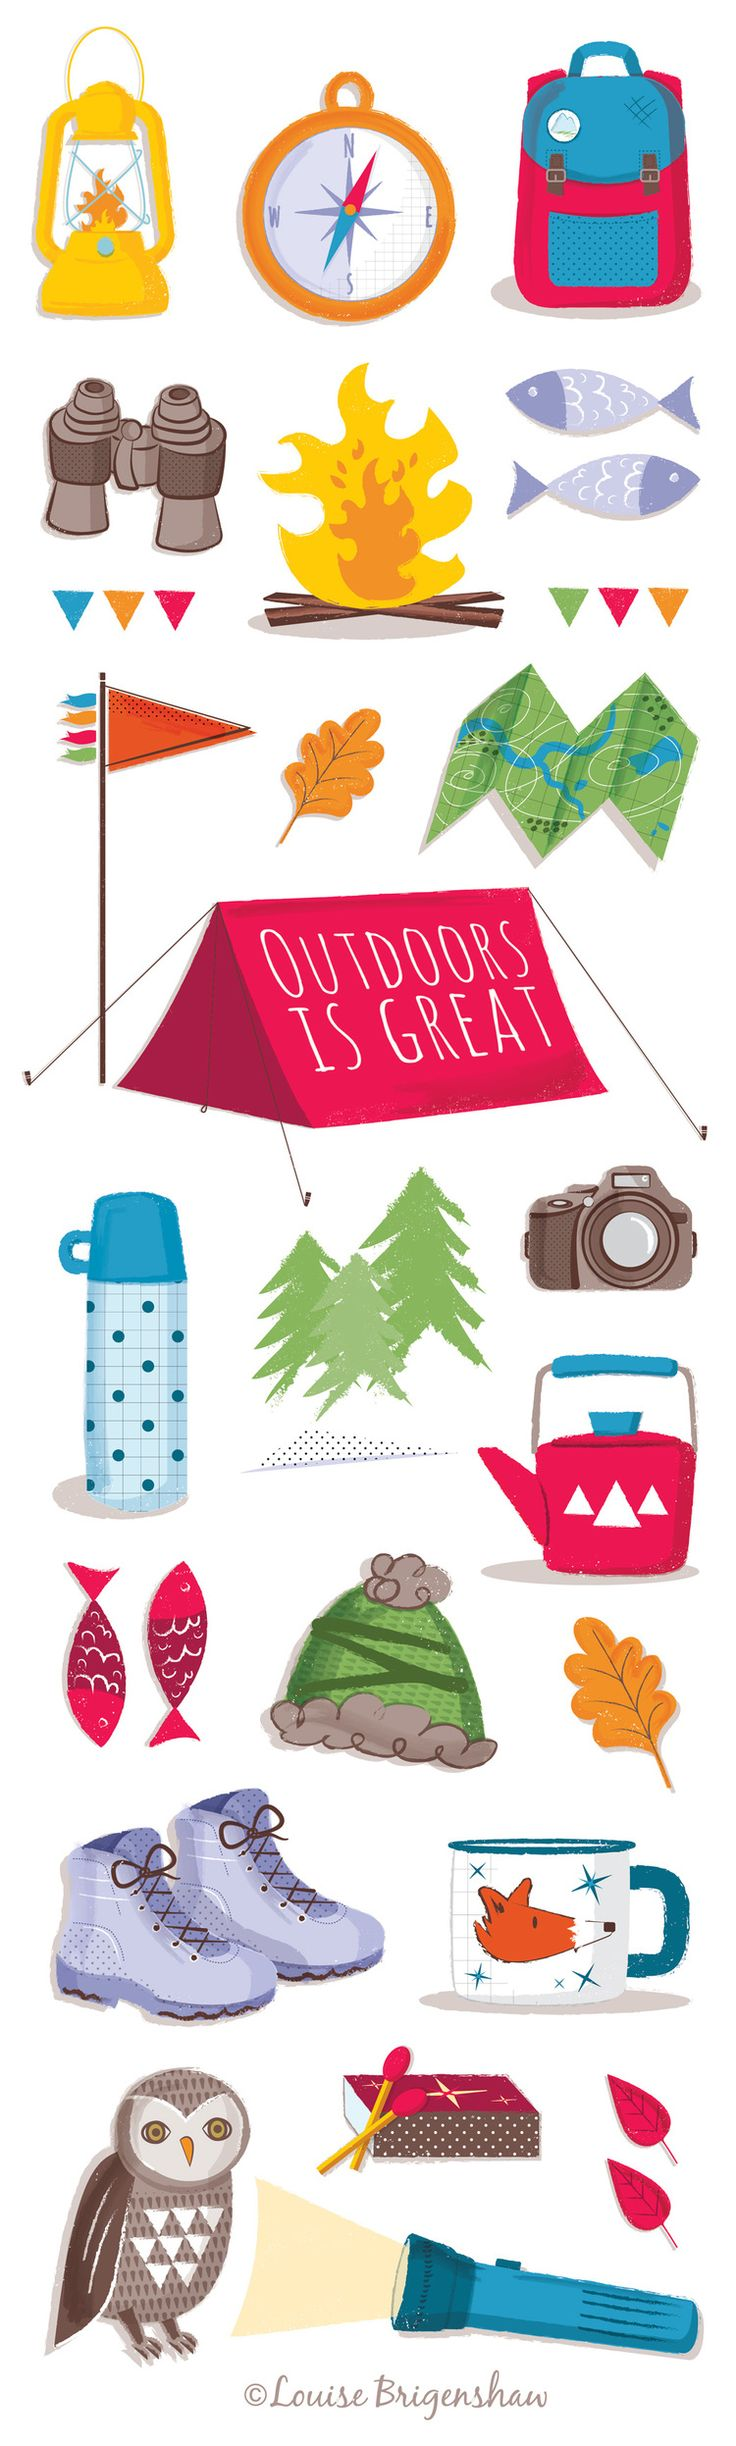 Camping Icon illustration by Louise Brigenshaw.jpg